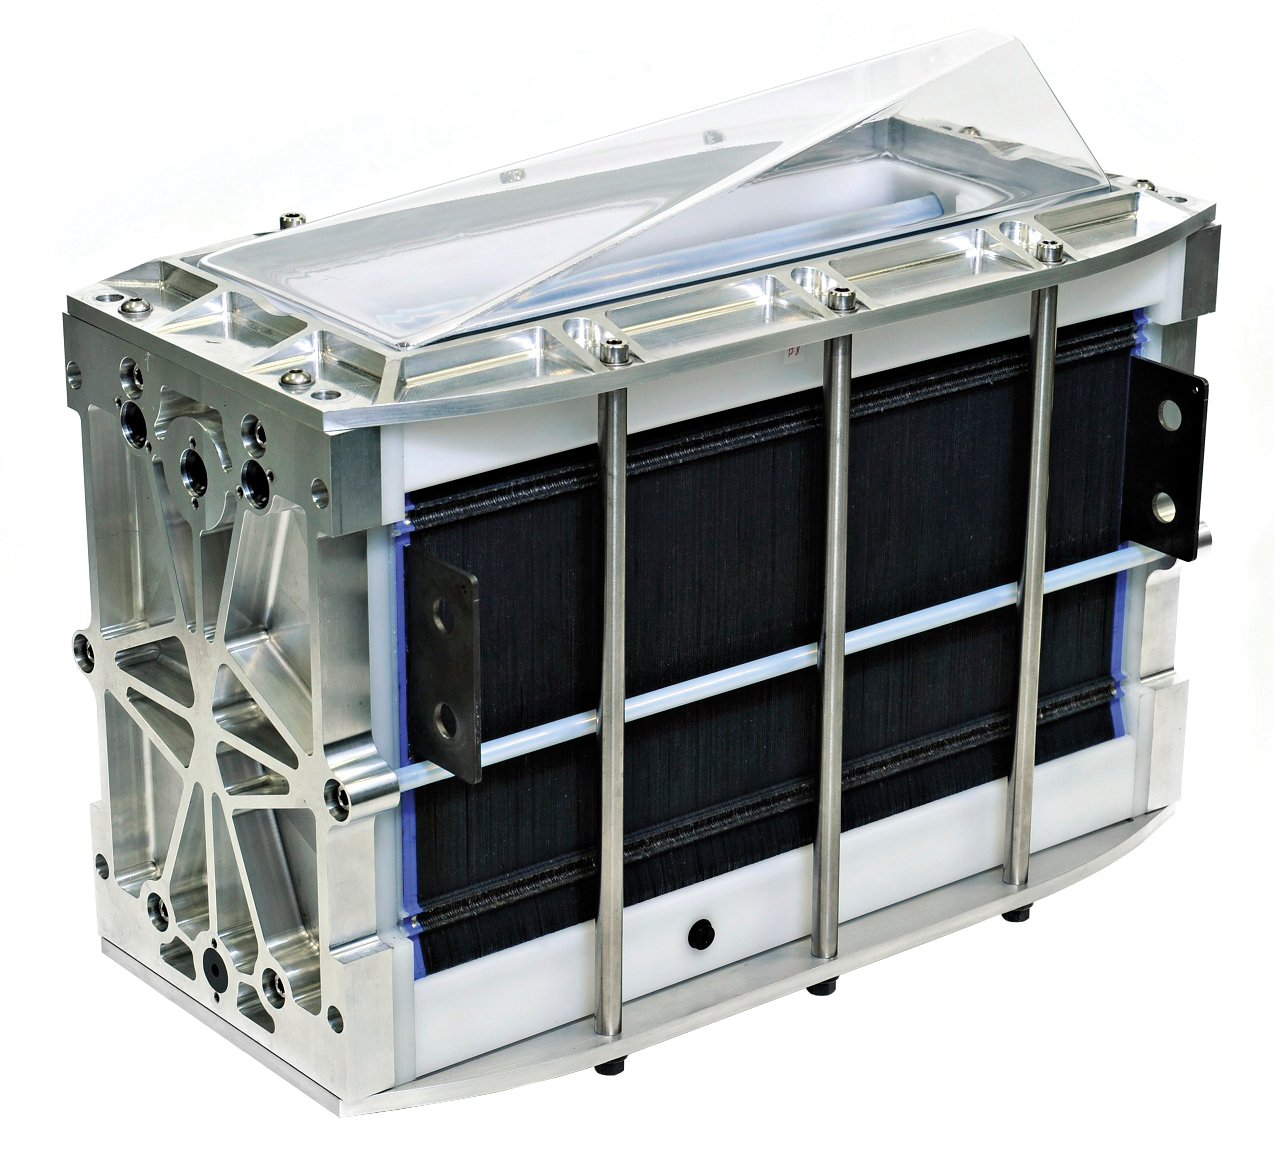 Intelligent Energy's fuel cell stack